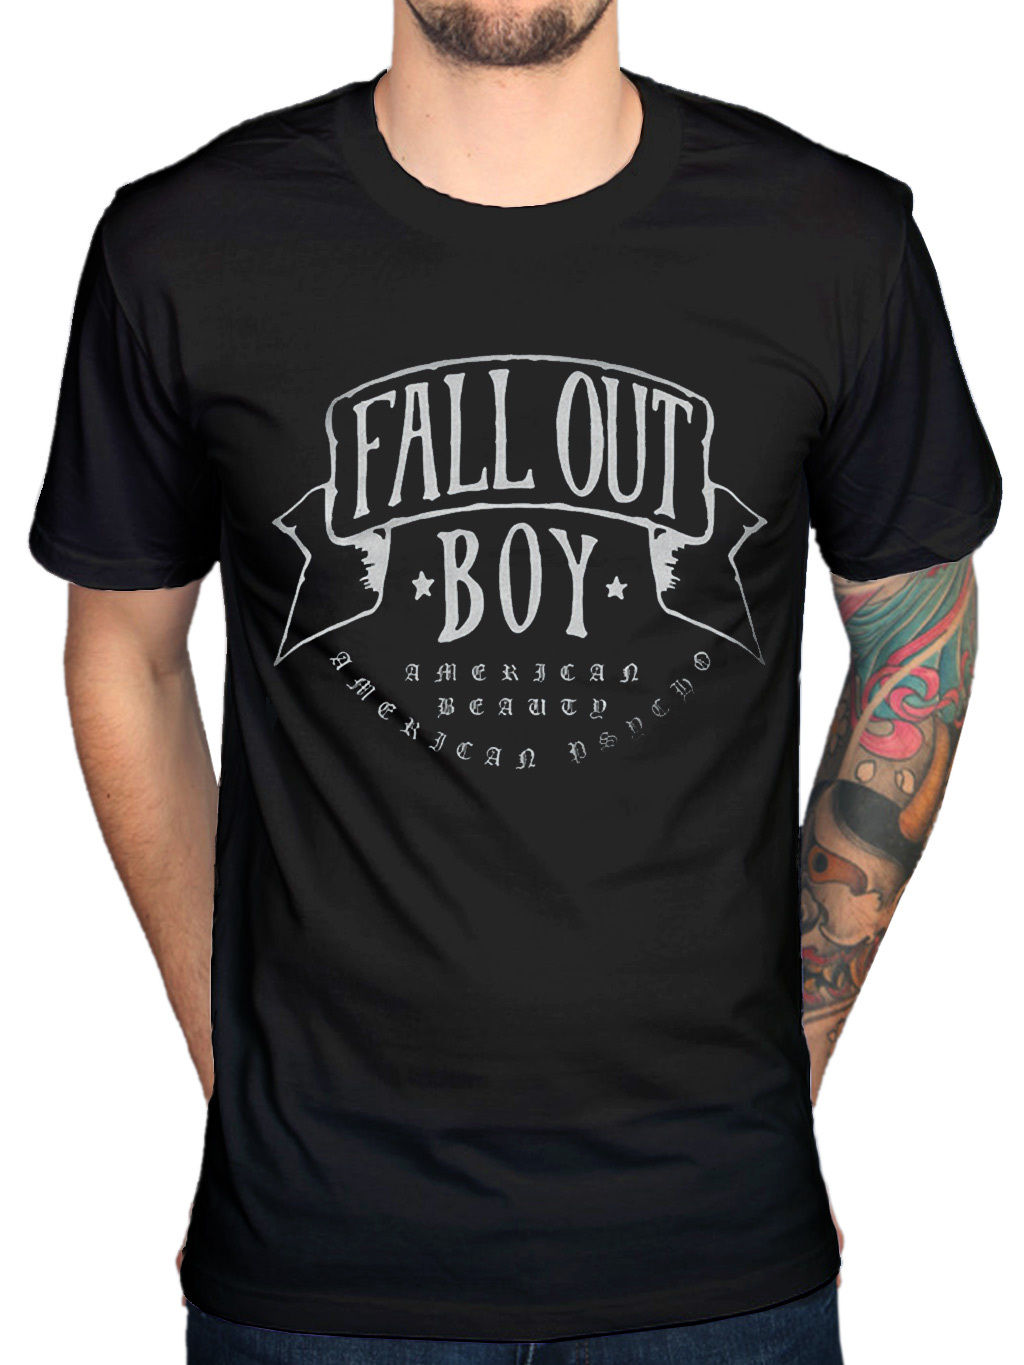 Official Fall Out Ragazzo American Beauty T-Shirt Rock FASCIA SECOLI Merchandise 100% Cotton Short Sleeve O-Neck Tops T Shirts